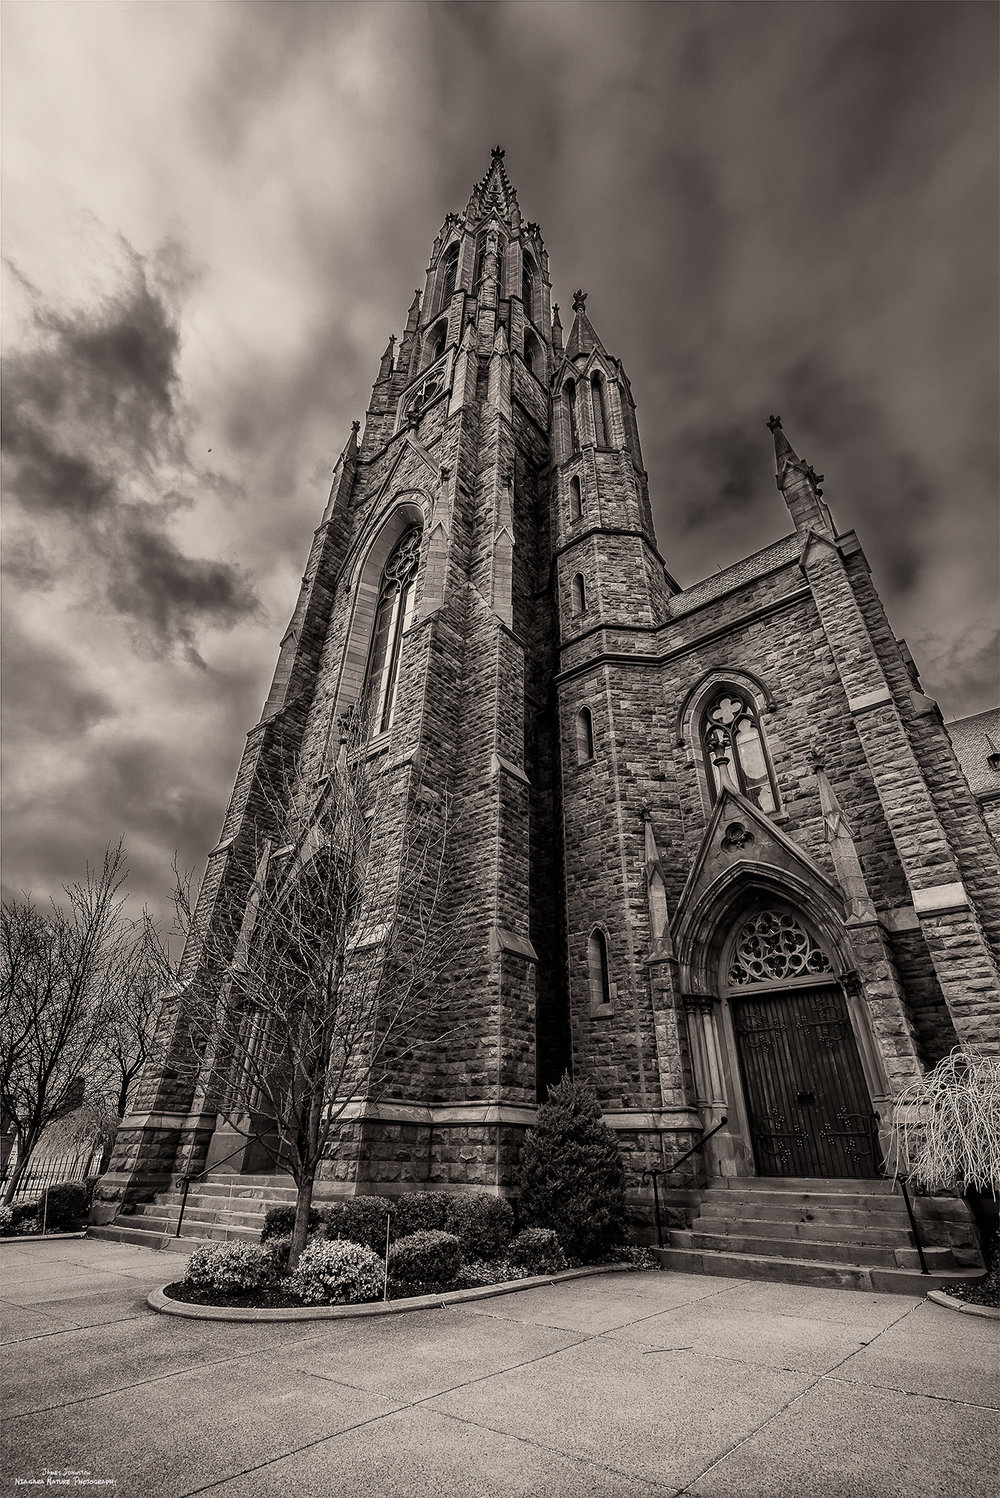 St. Louis Roman Catholic Church